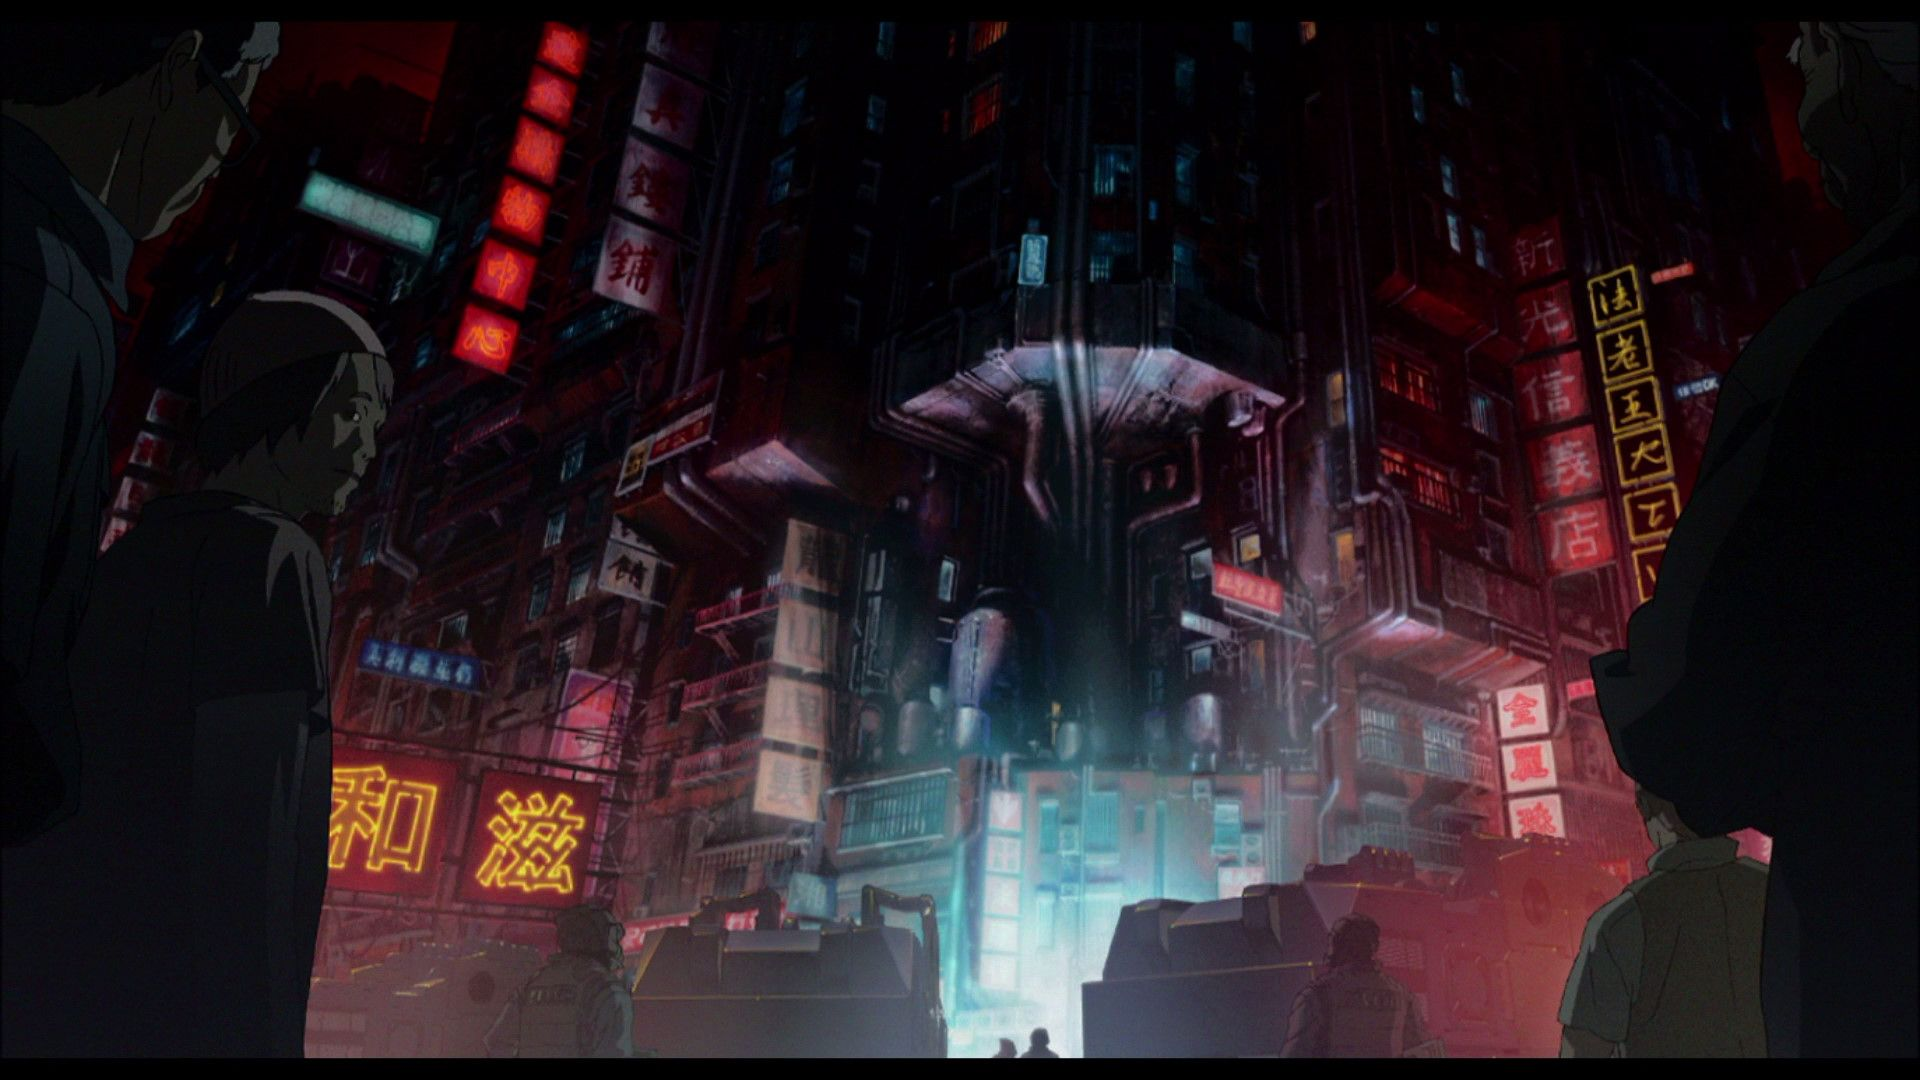 Ghost In The Shell 1995 Looks Like Kowloon 20 Years Later If